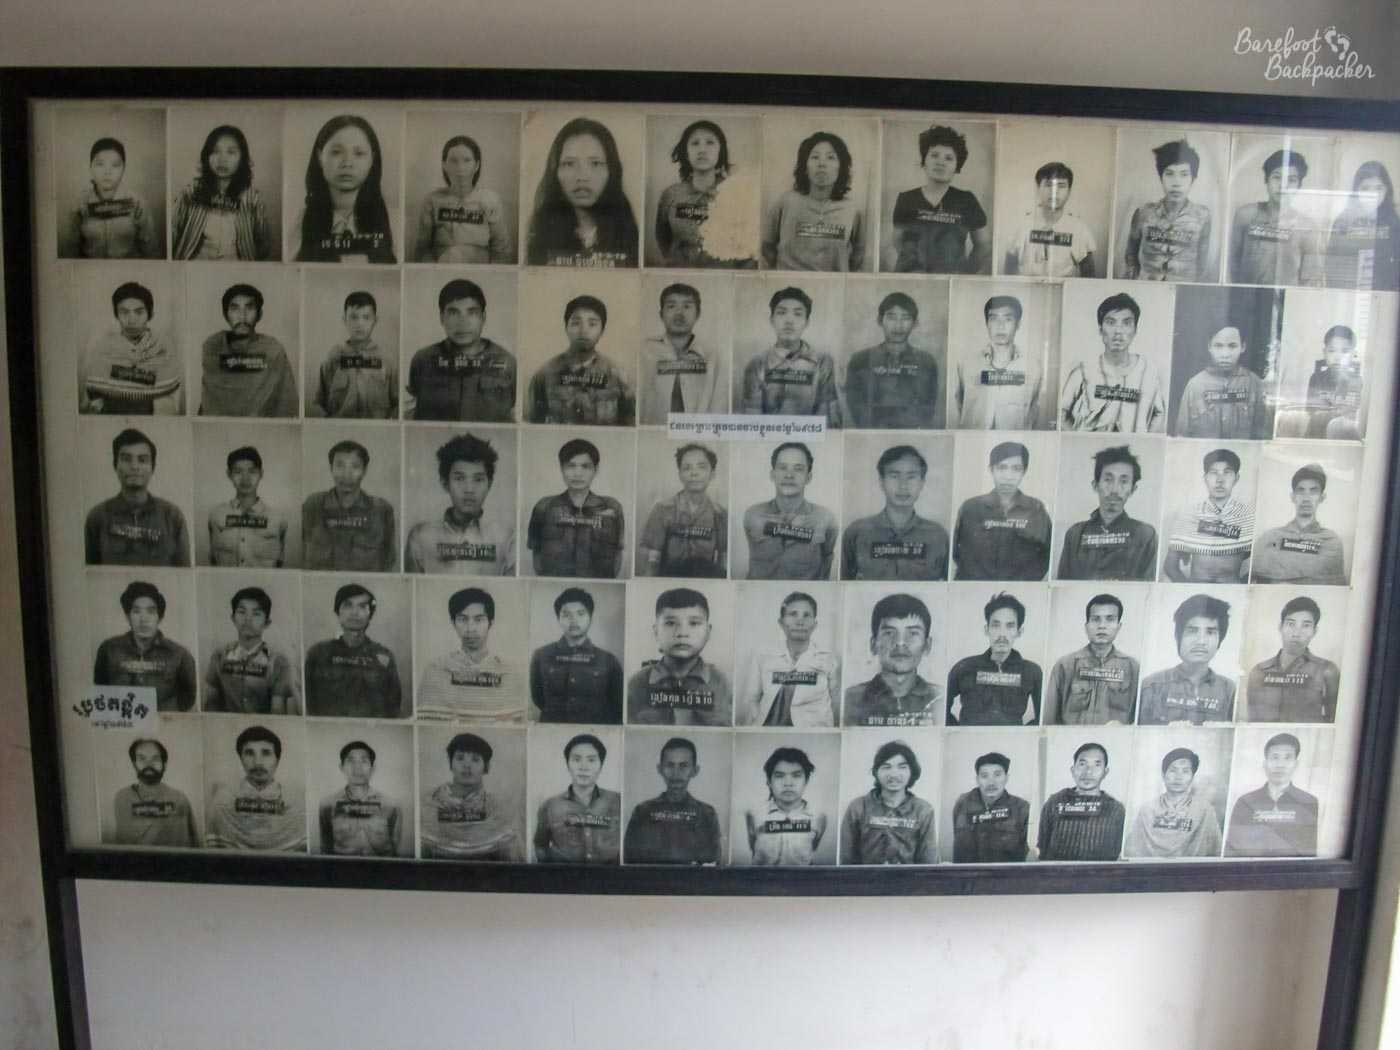 A large photo frame, with headshots and names, five down and twelve wide, in black & white, displaying a small selection of some of the people who were processed here. And presumably killed here.